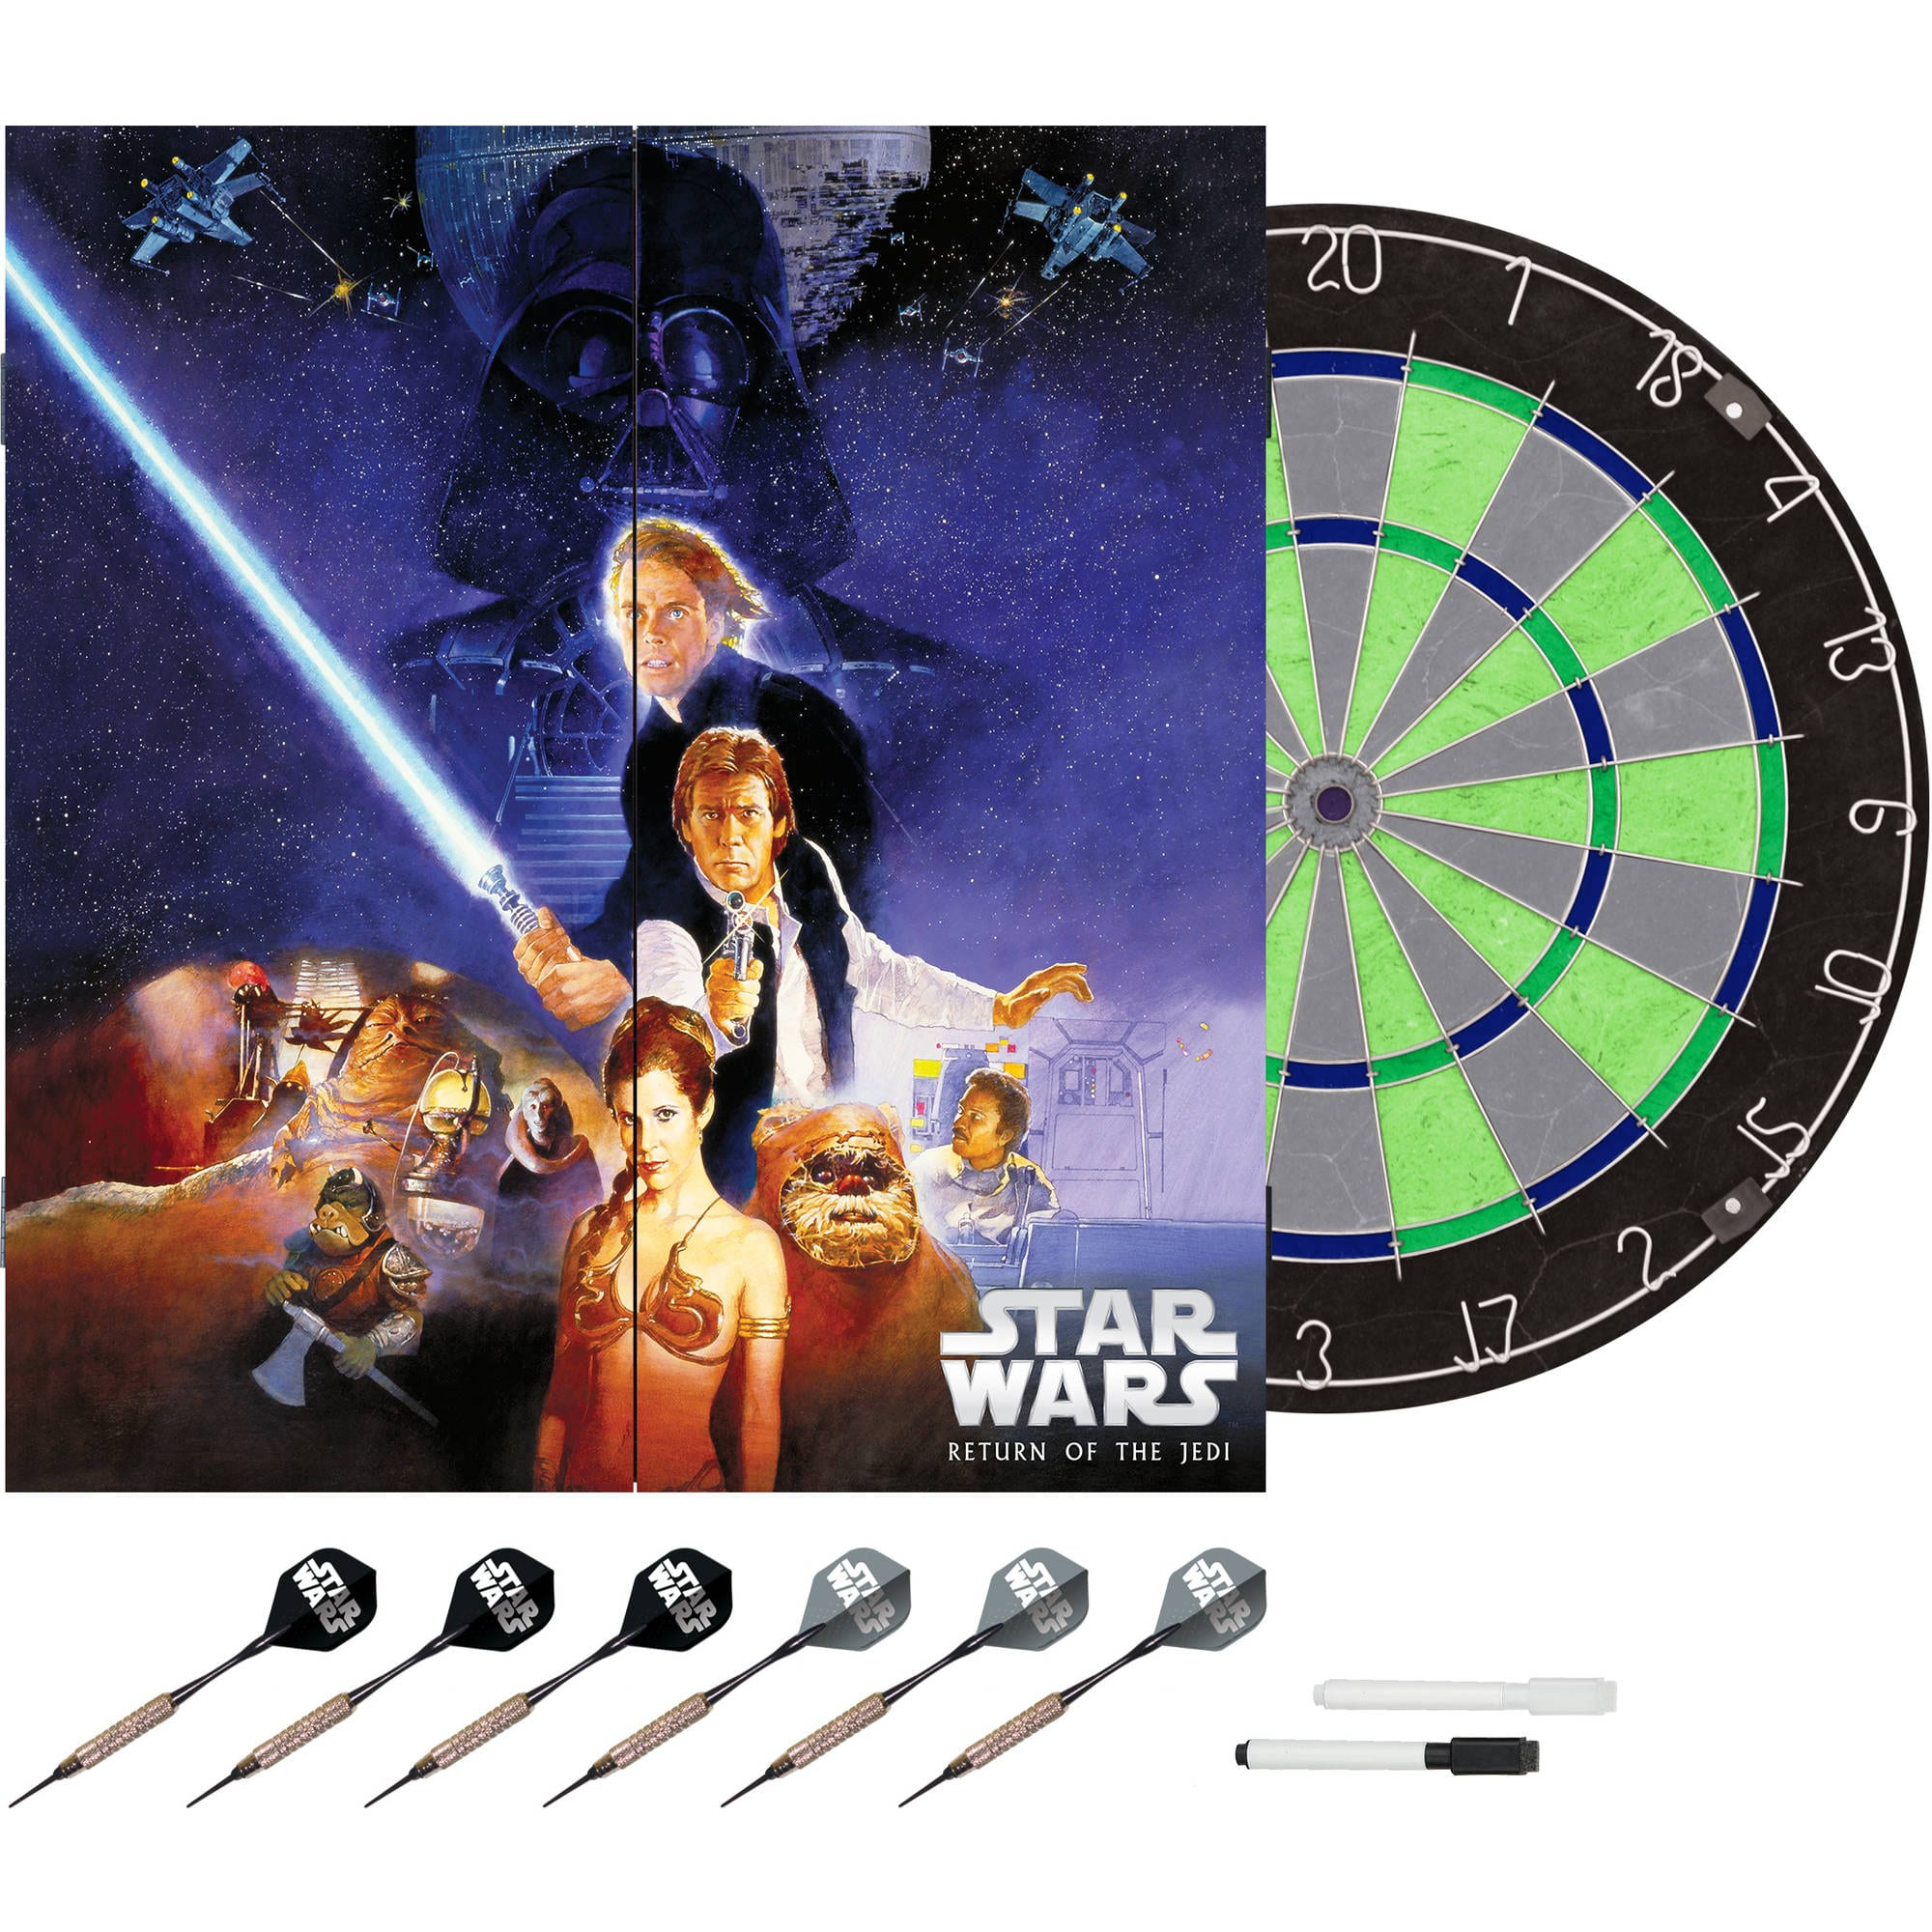 Walmart online! Star Wars paper Dartboard(s) starting at $9.00 and Bristle dart boards with cabinet starting at $21.97